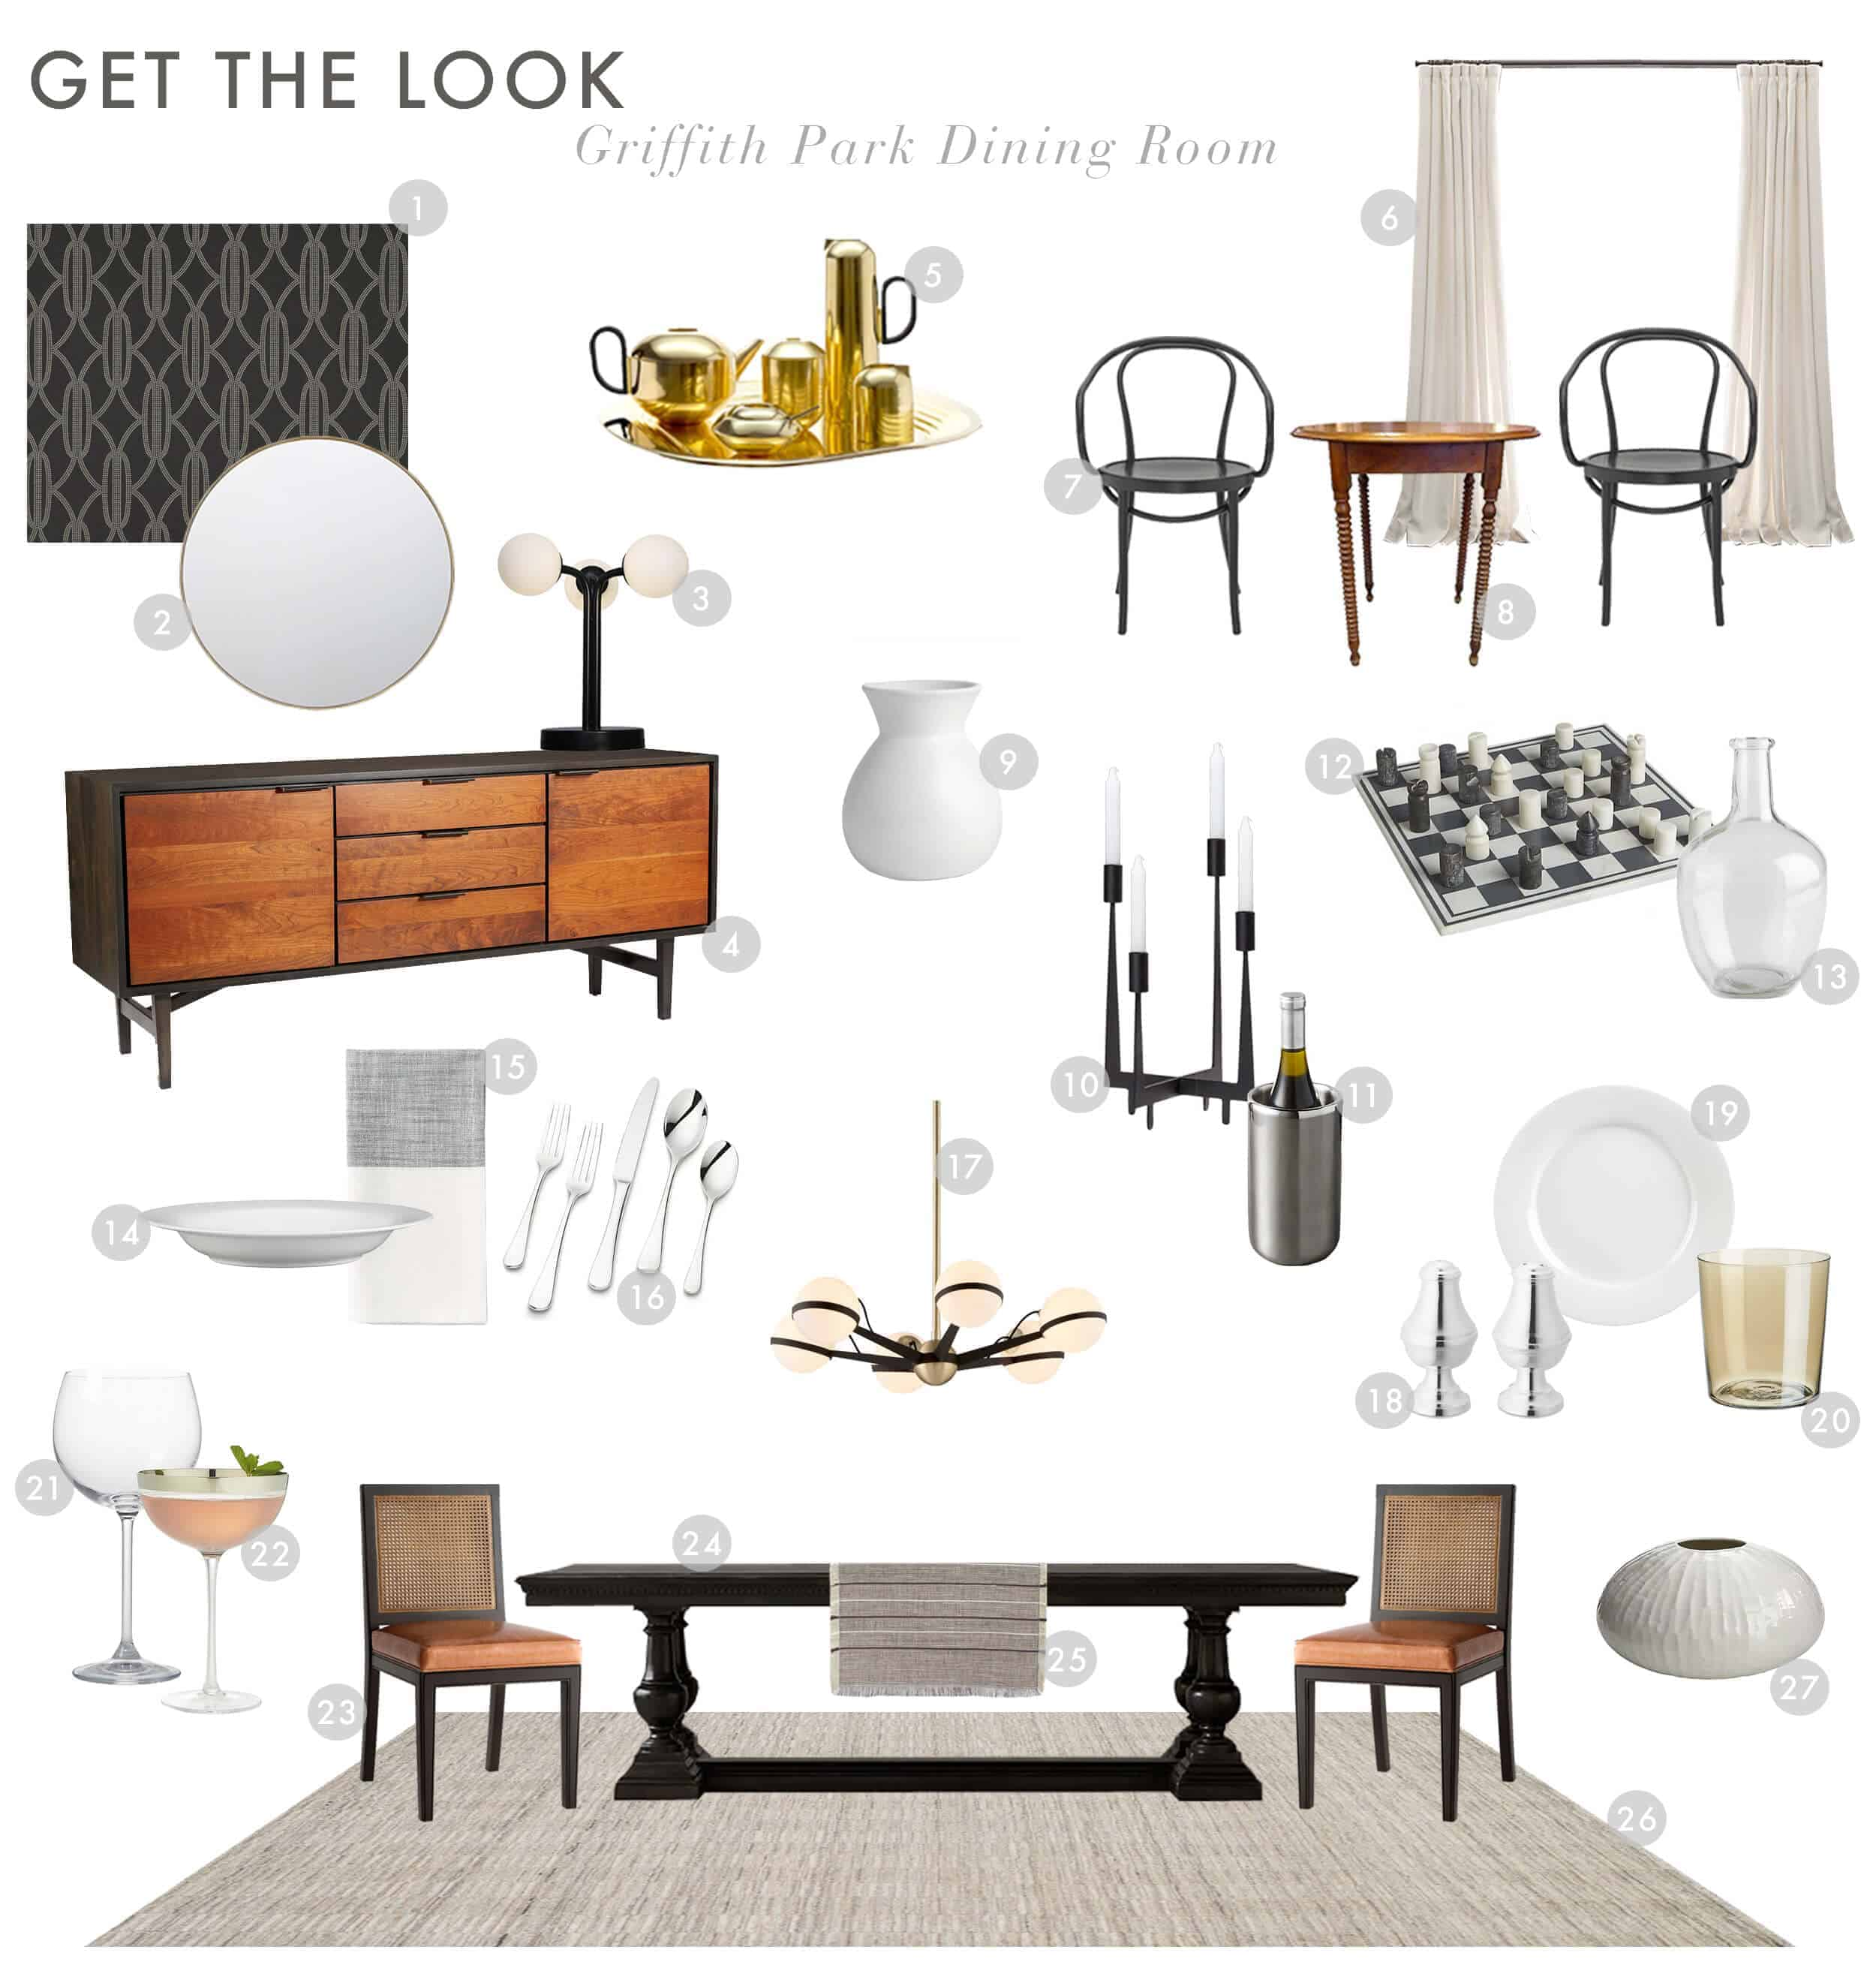 Emily Henderson Griffith Park House Dan And Kim Italian Modern Reveal Dining Room Get The Look Final